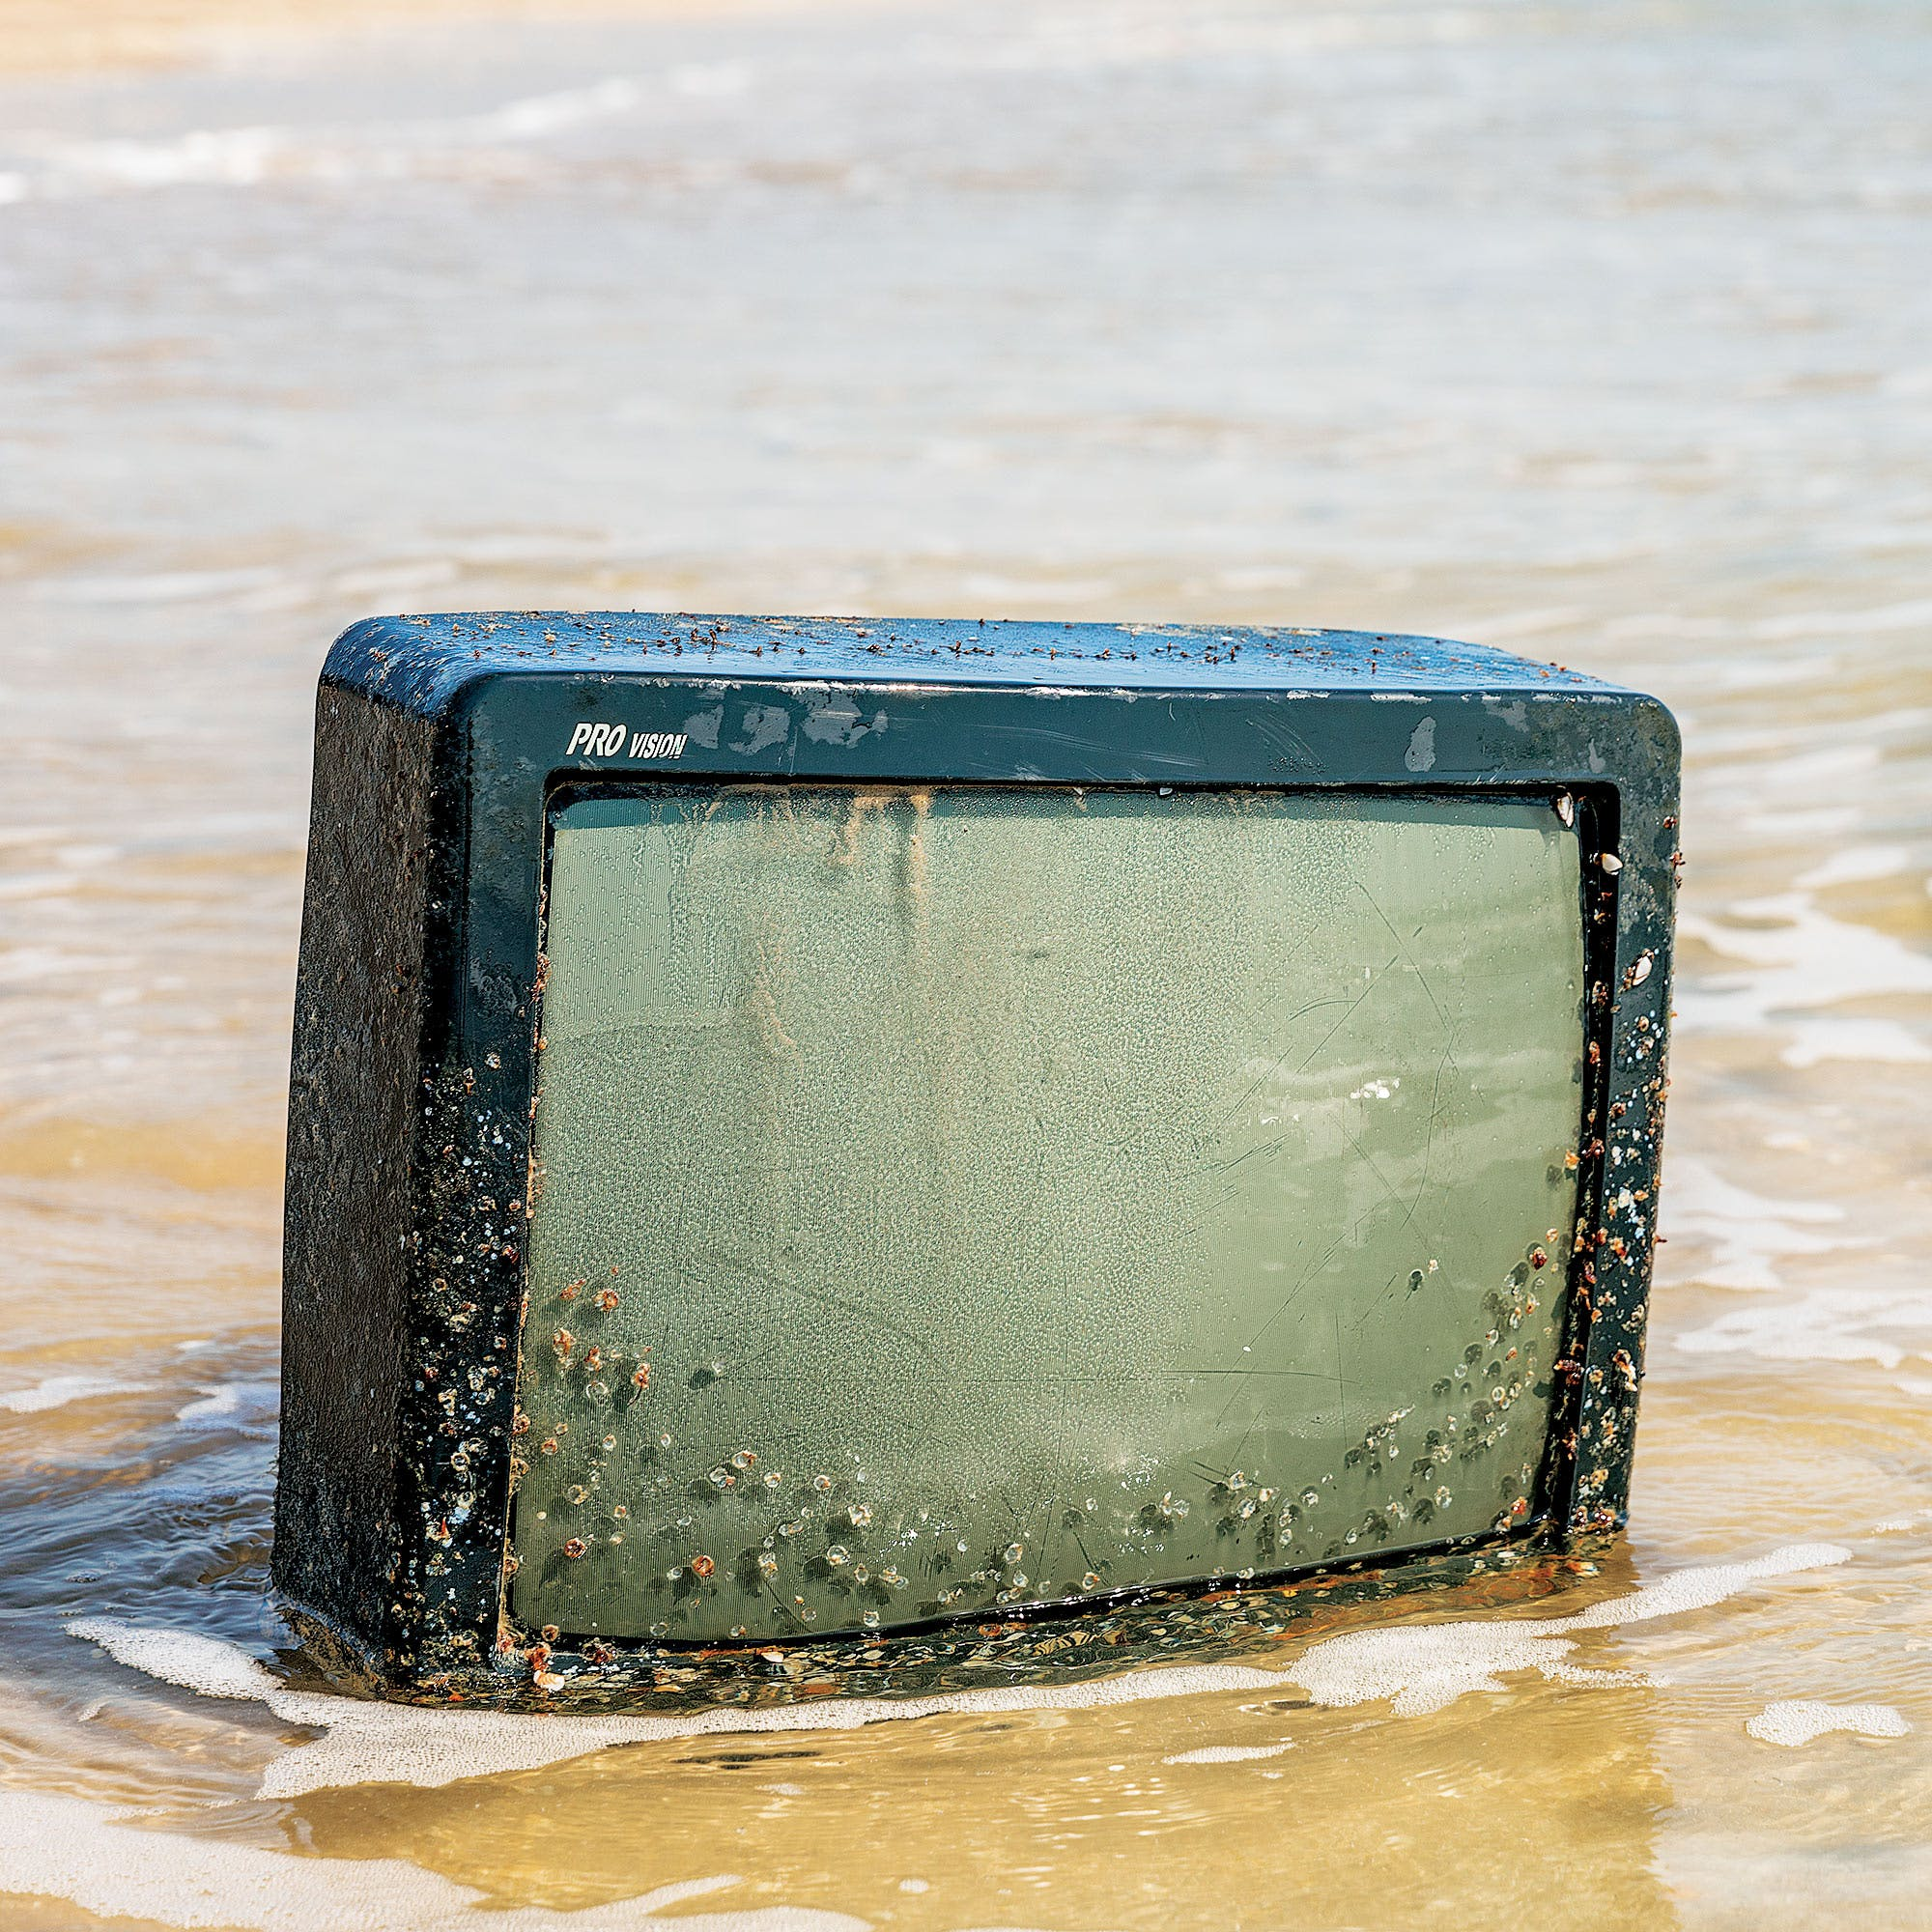 Barnacles cling to a television washed up on the beach around mile marker 27.